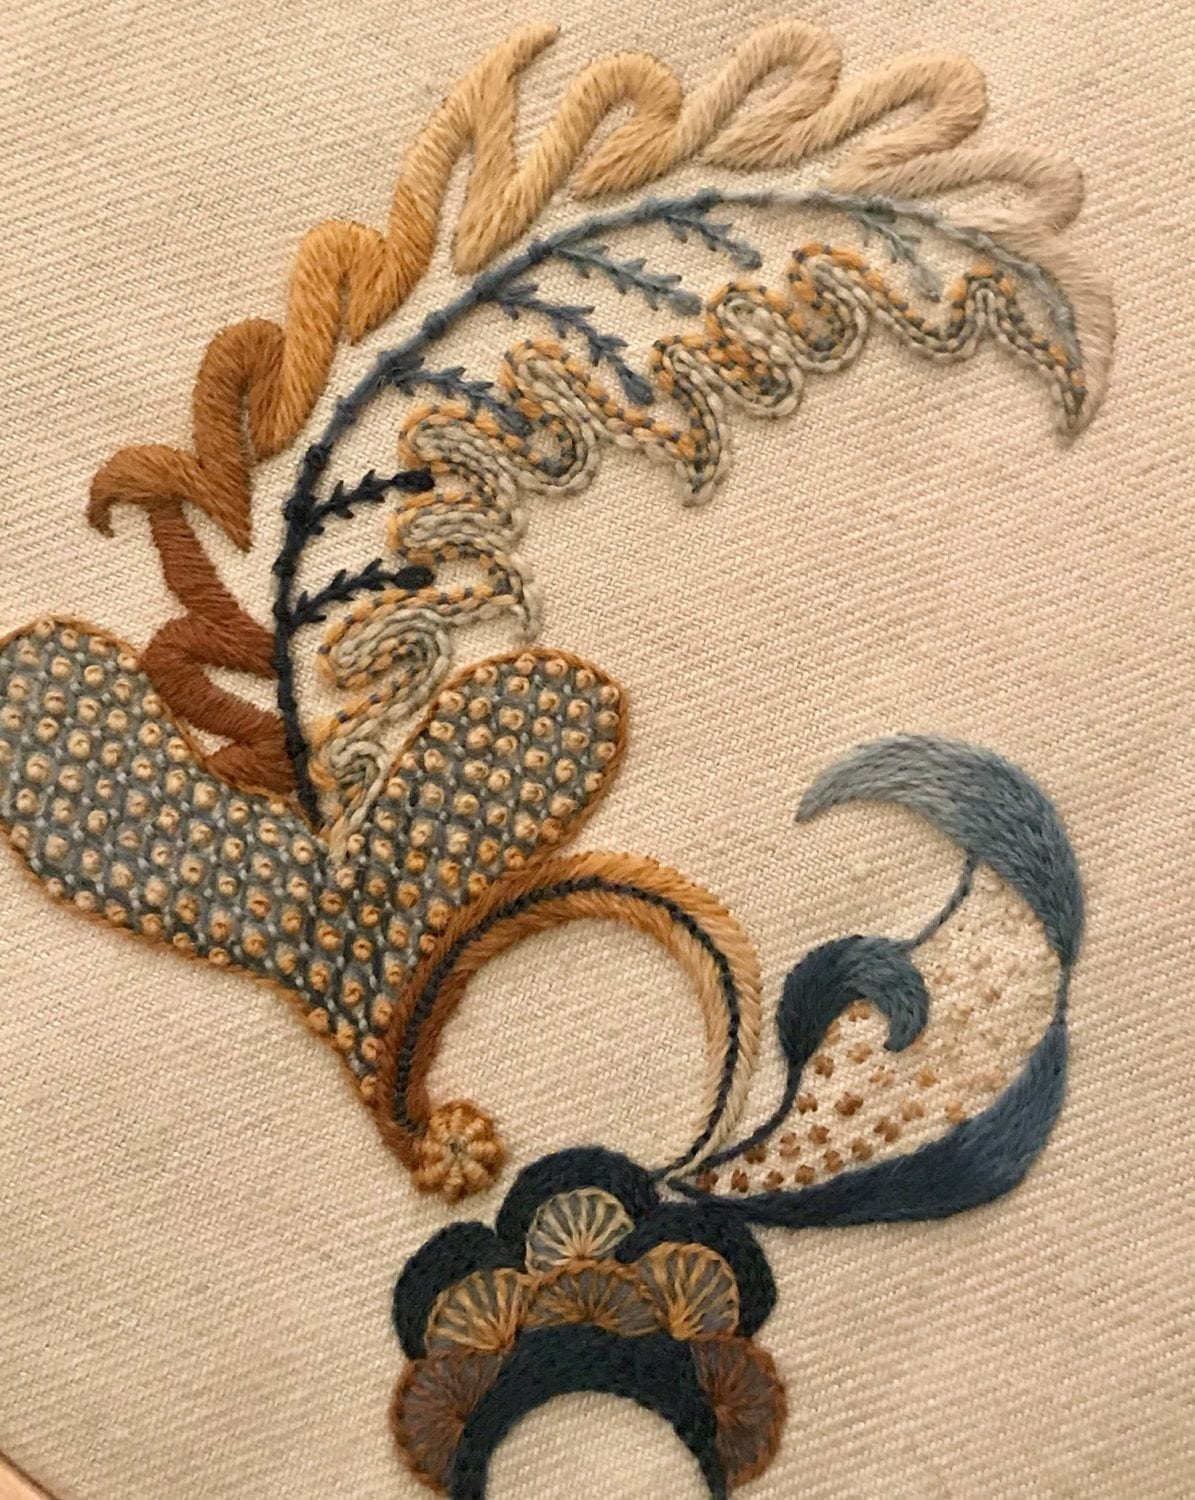 Stumpwork art from a student of the royal school of needlework